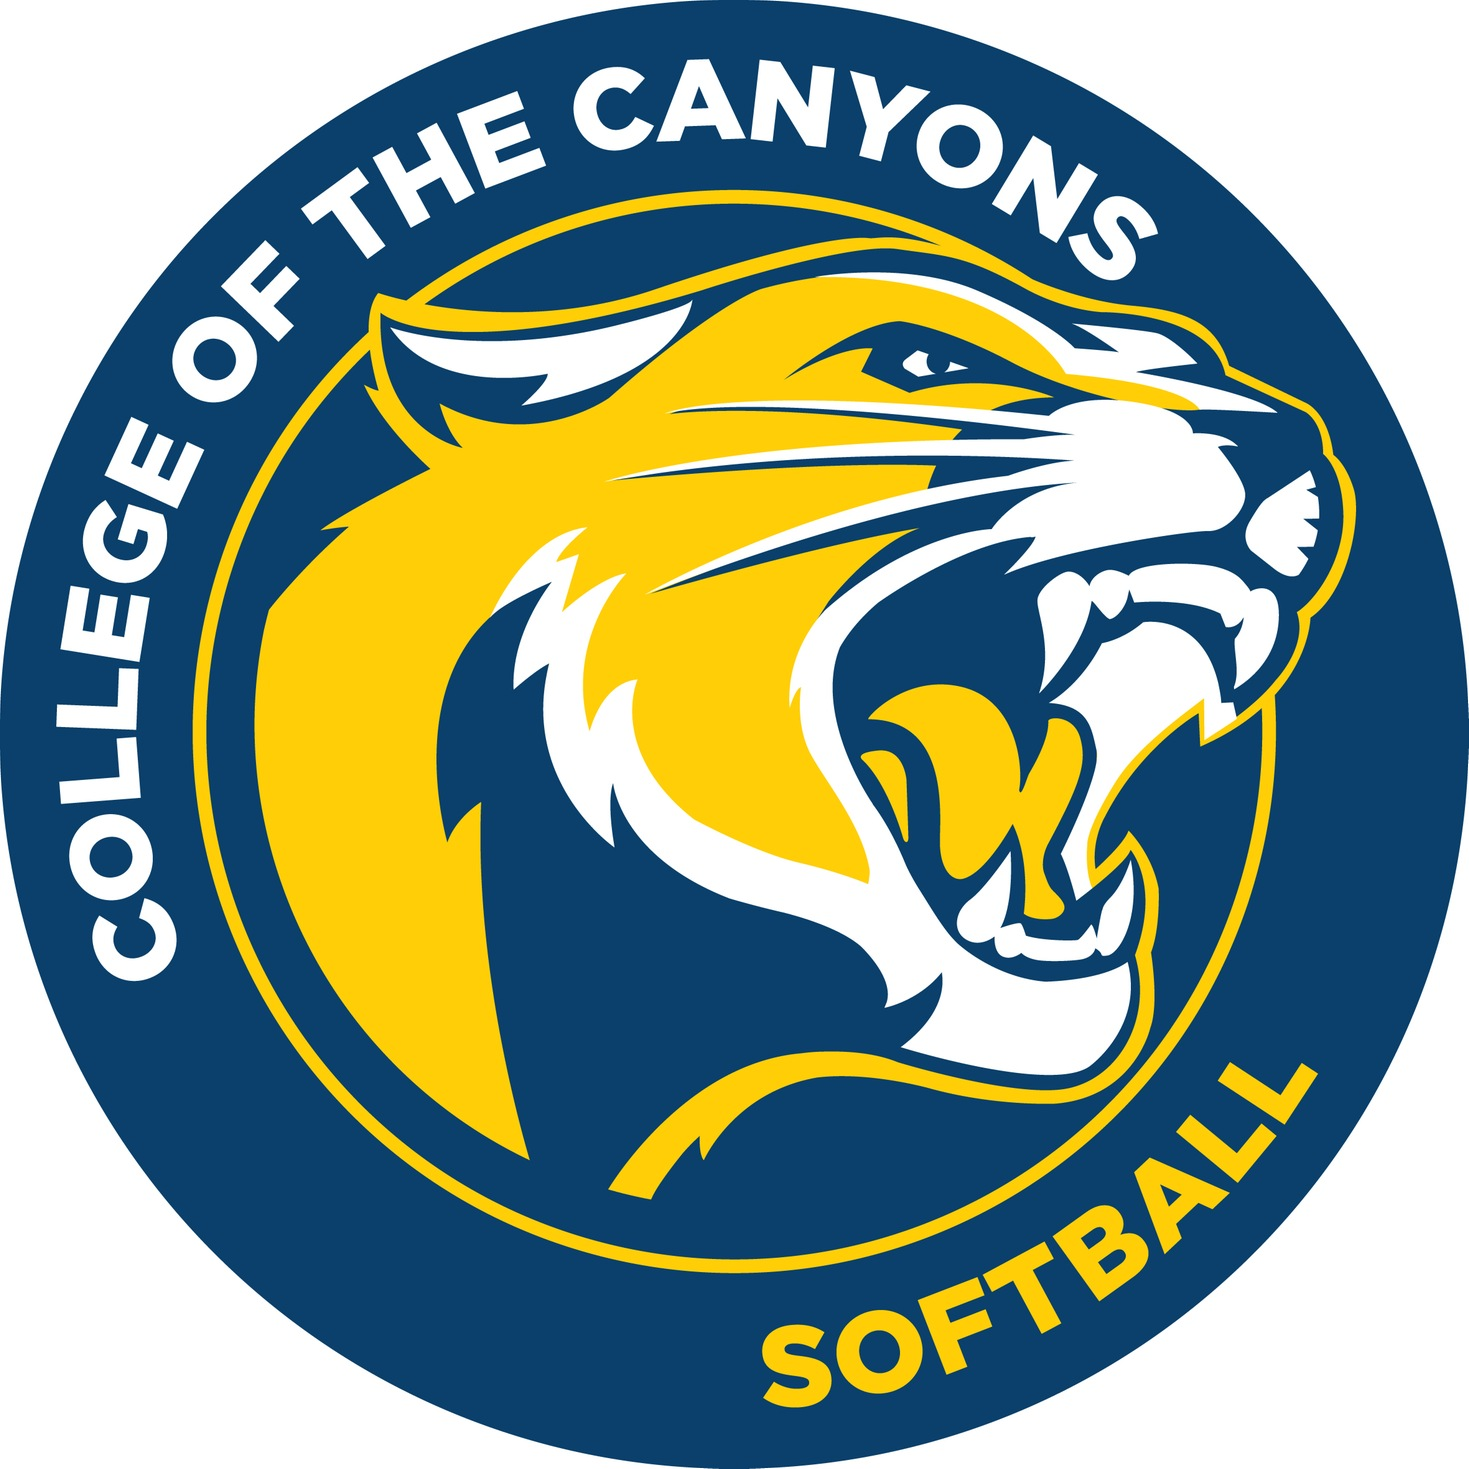 College of the Canyons softball logo.